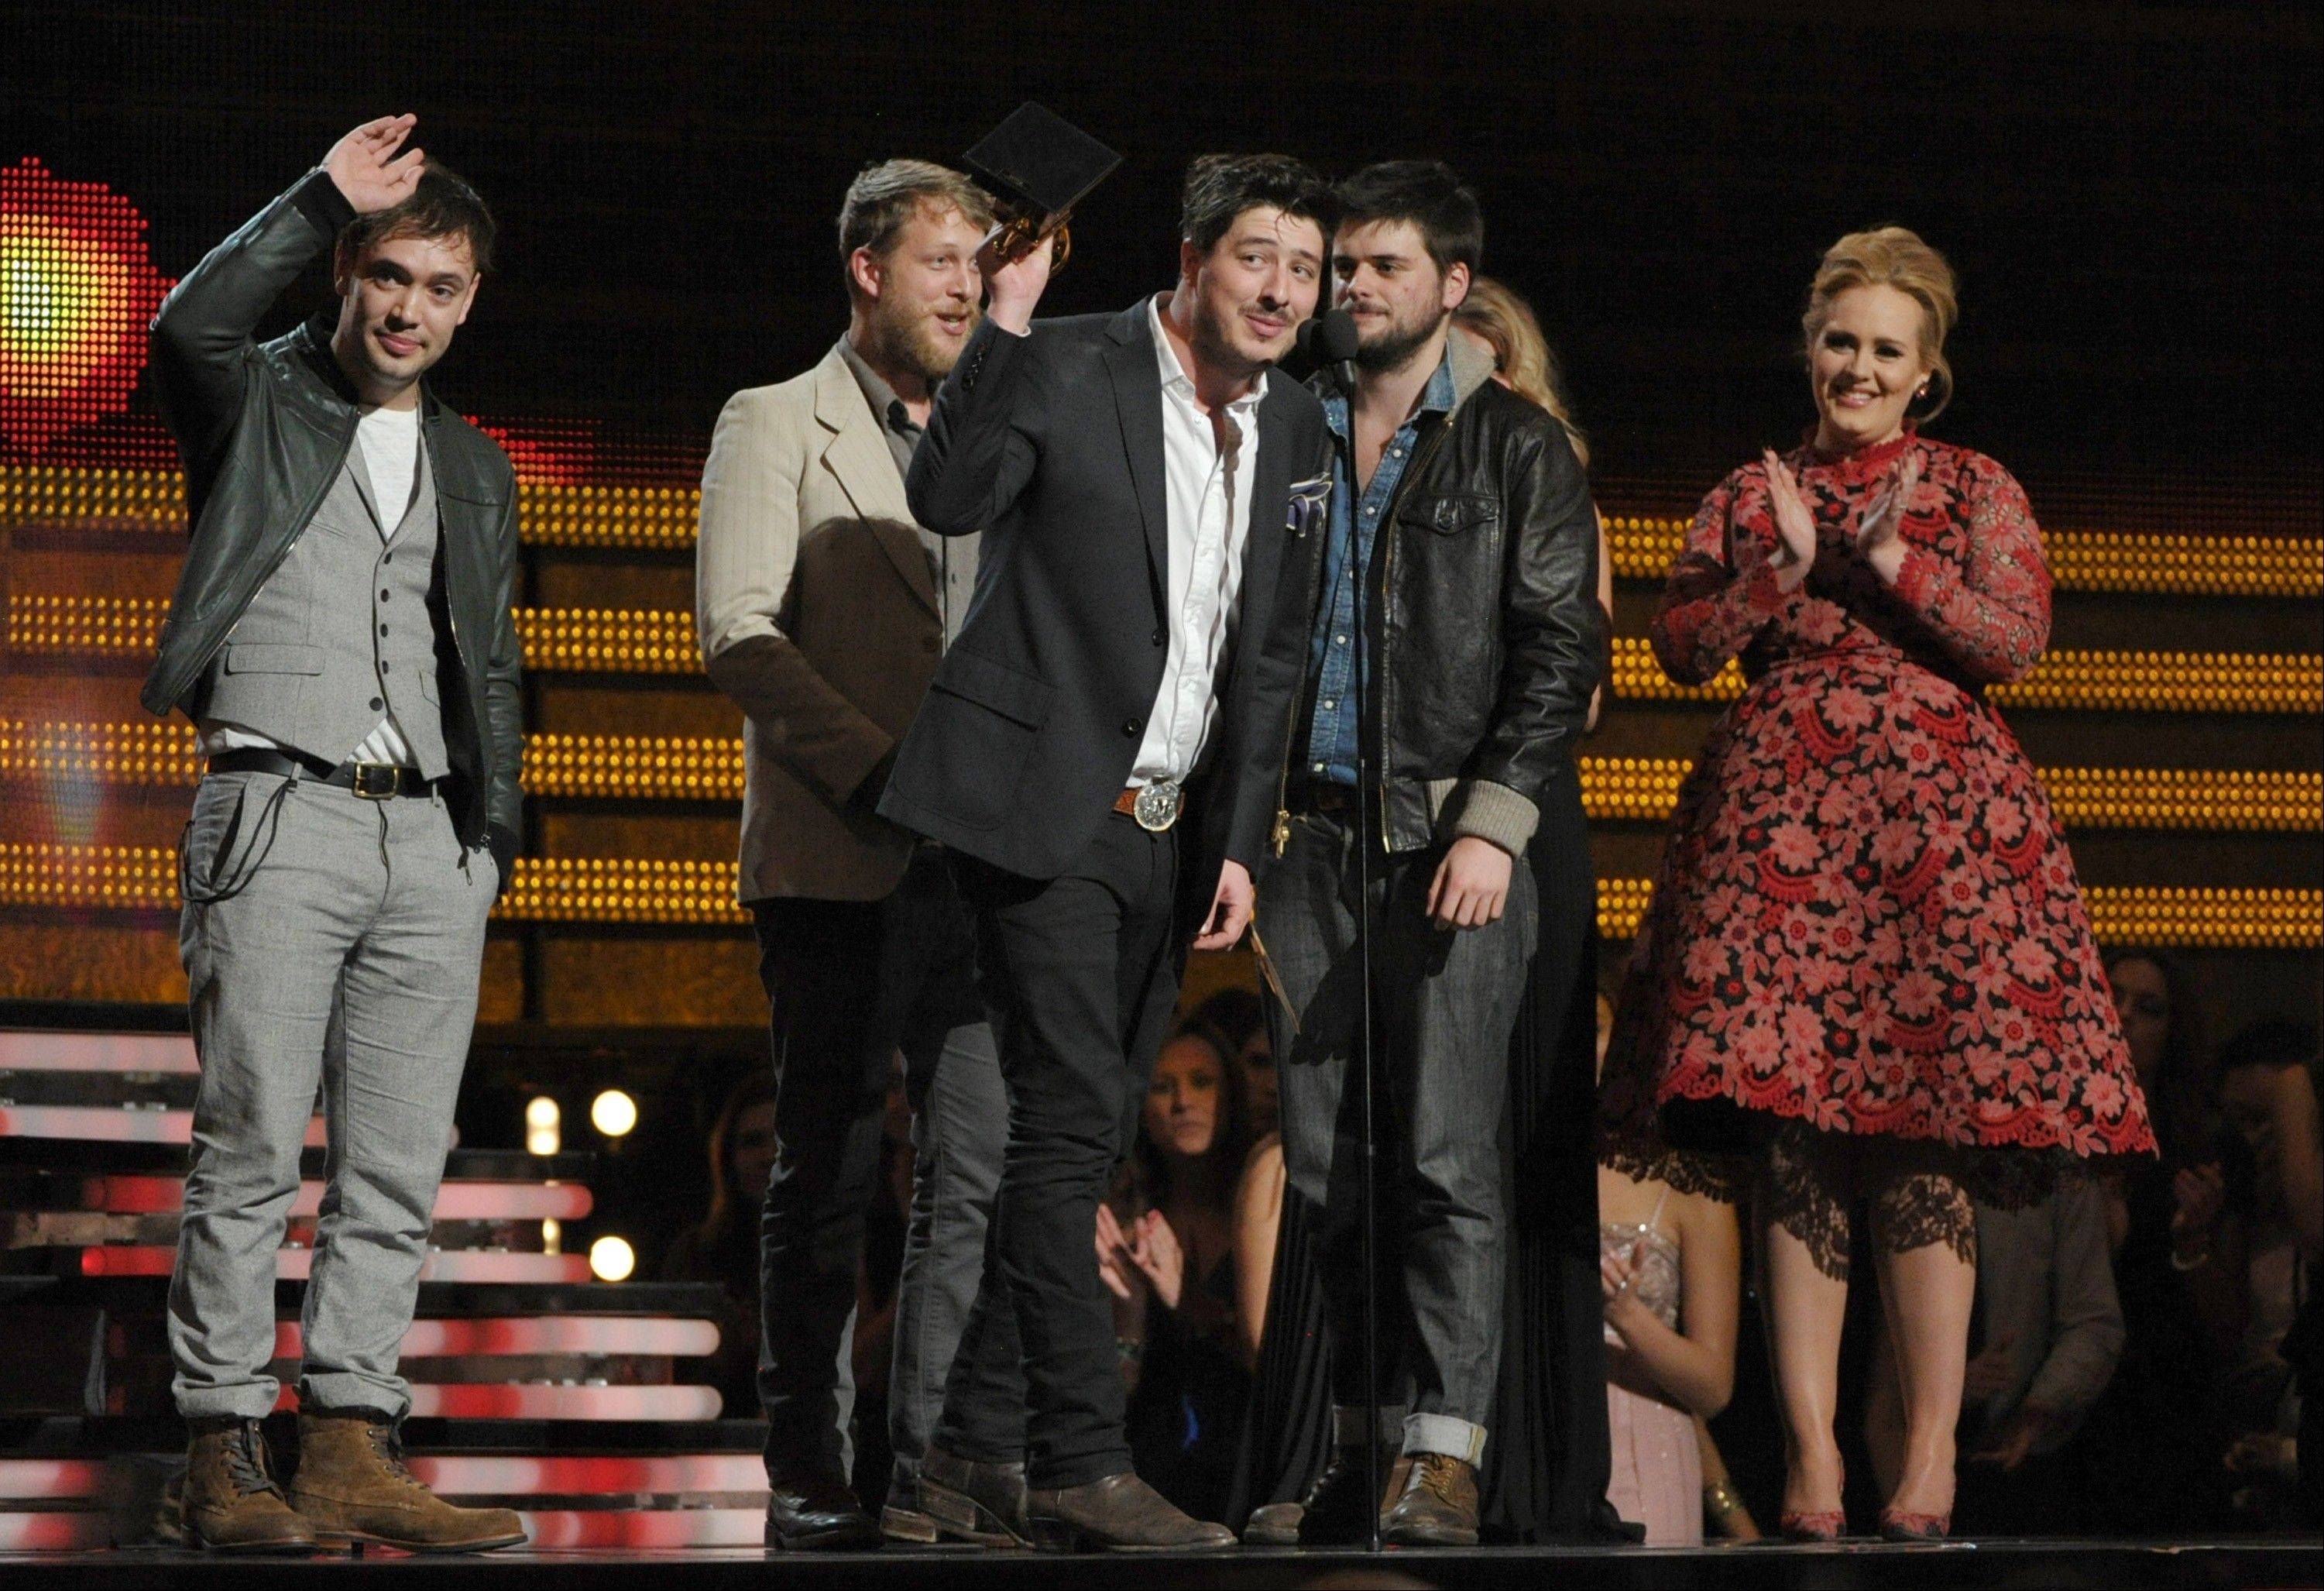 Mumford & Sons, from left, Ben Lovett, Ted Dwayne, Marcus Mumford and Country Winston Marshall accept the award for album of the year for �Babel� at the 55th annual Grammy Awards on Sunday.